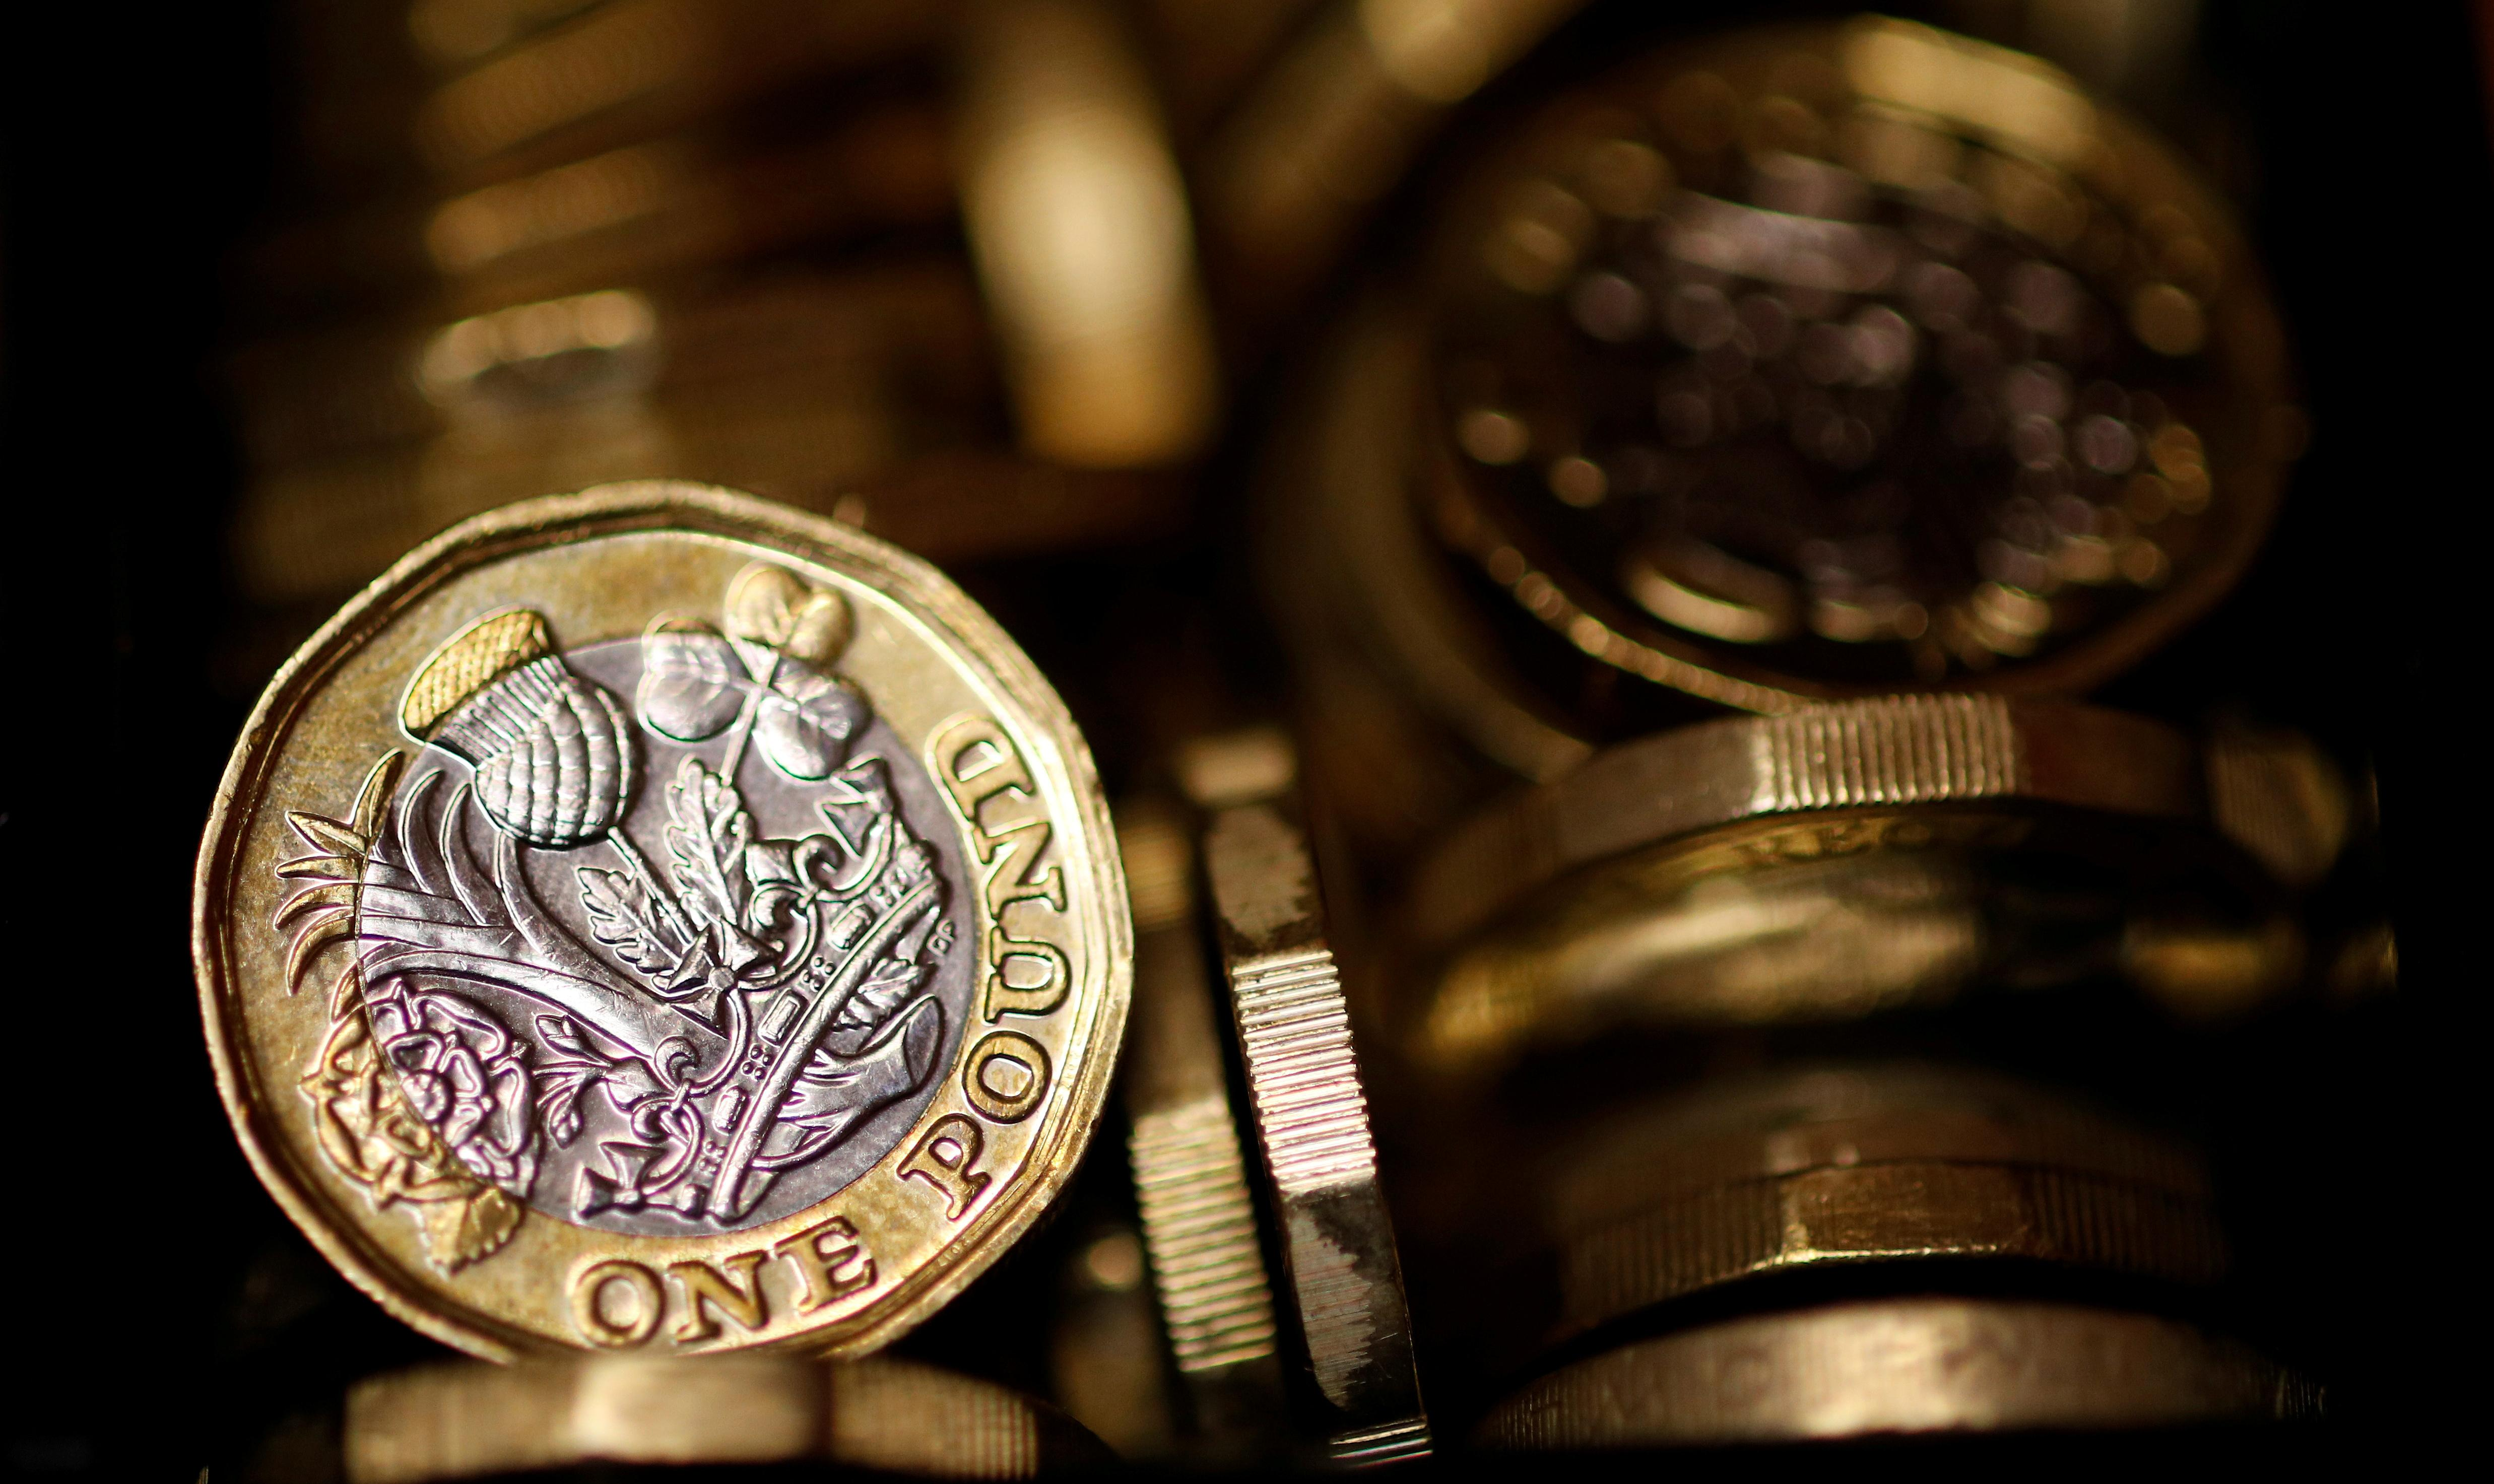 Sterling rockets as Irish backstop hopes add to Brexit optimism